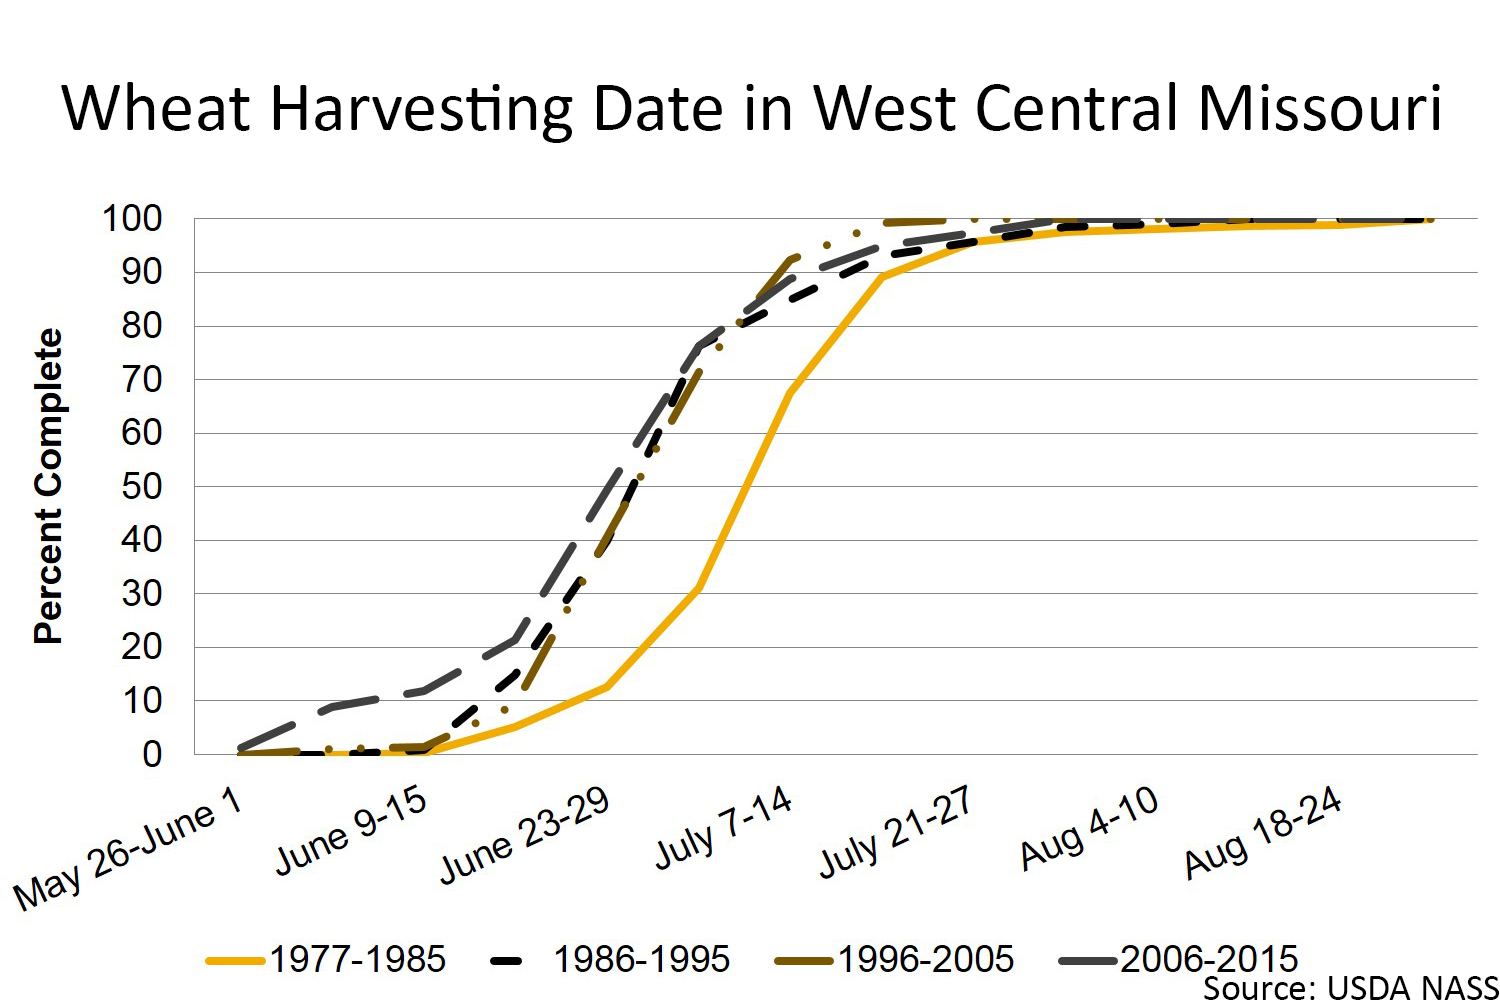 Wheat harvesting date in west central Missouri